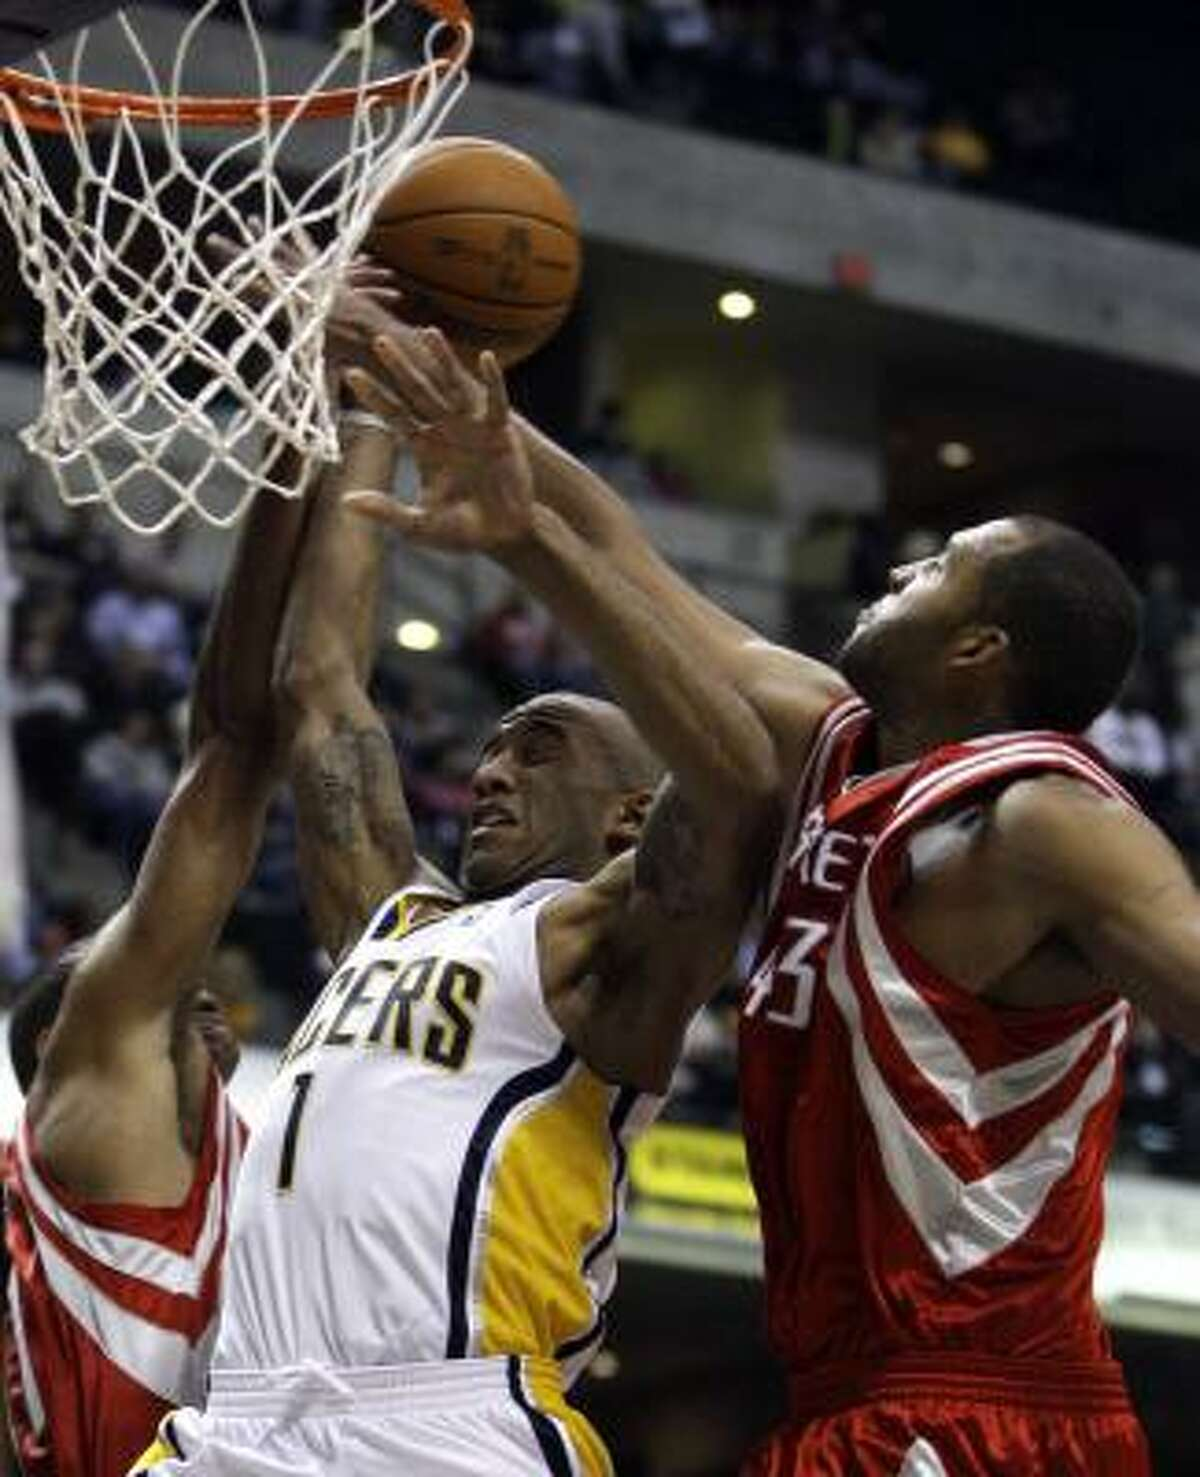 Pacers guard Dahntay Jones (1) puts up a shot against Rockets forwards Shane Battier, left, and Brian Cook in Friday's game.